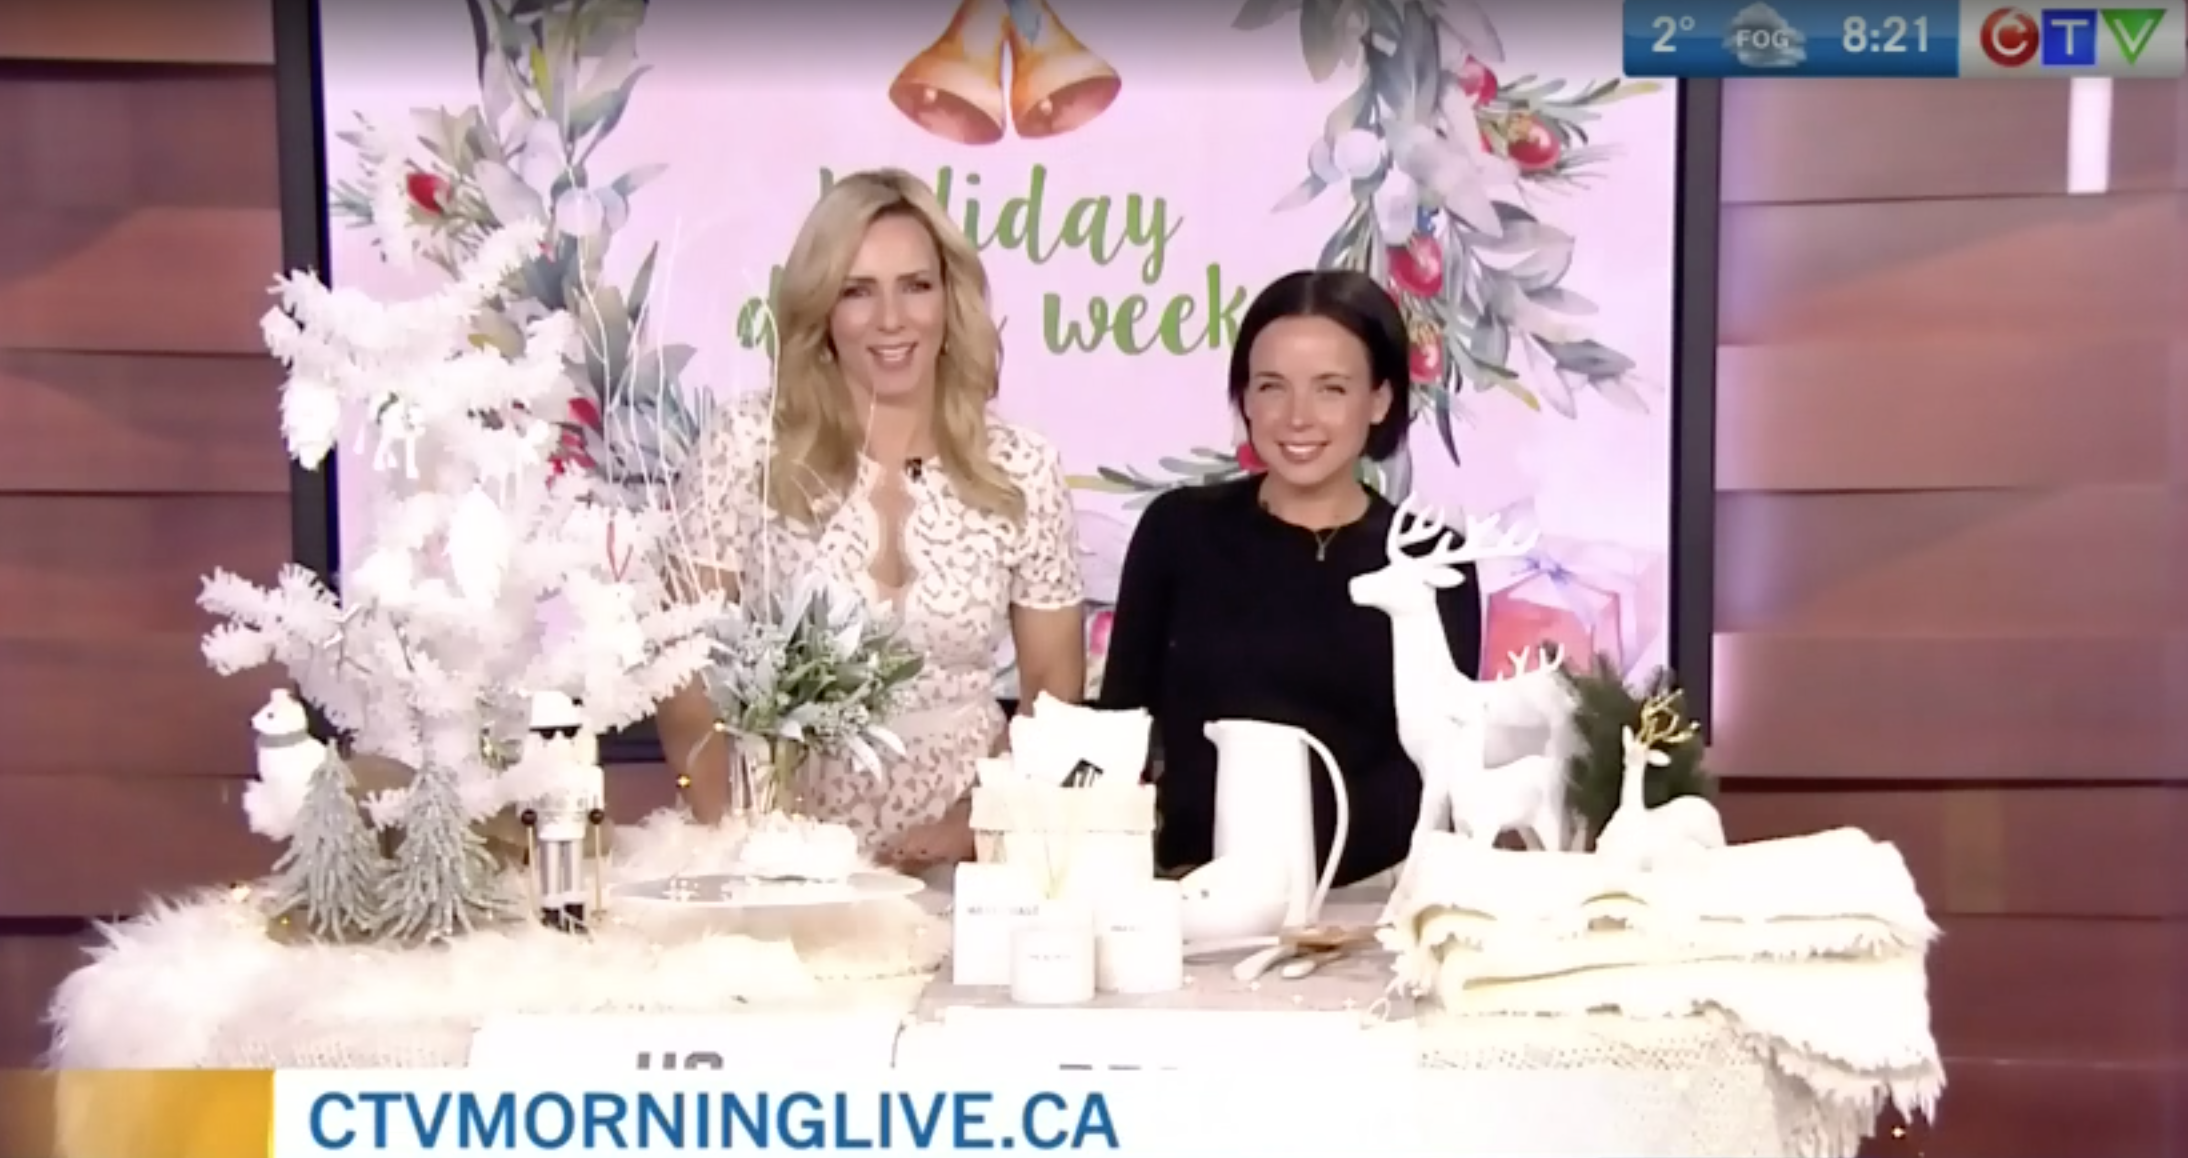 CTV Morning Live: How to create a white Christmas with decor